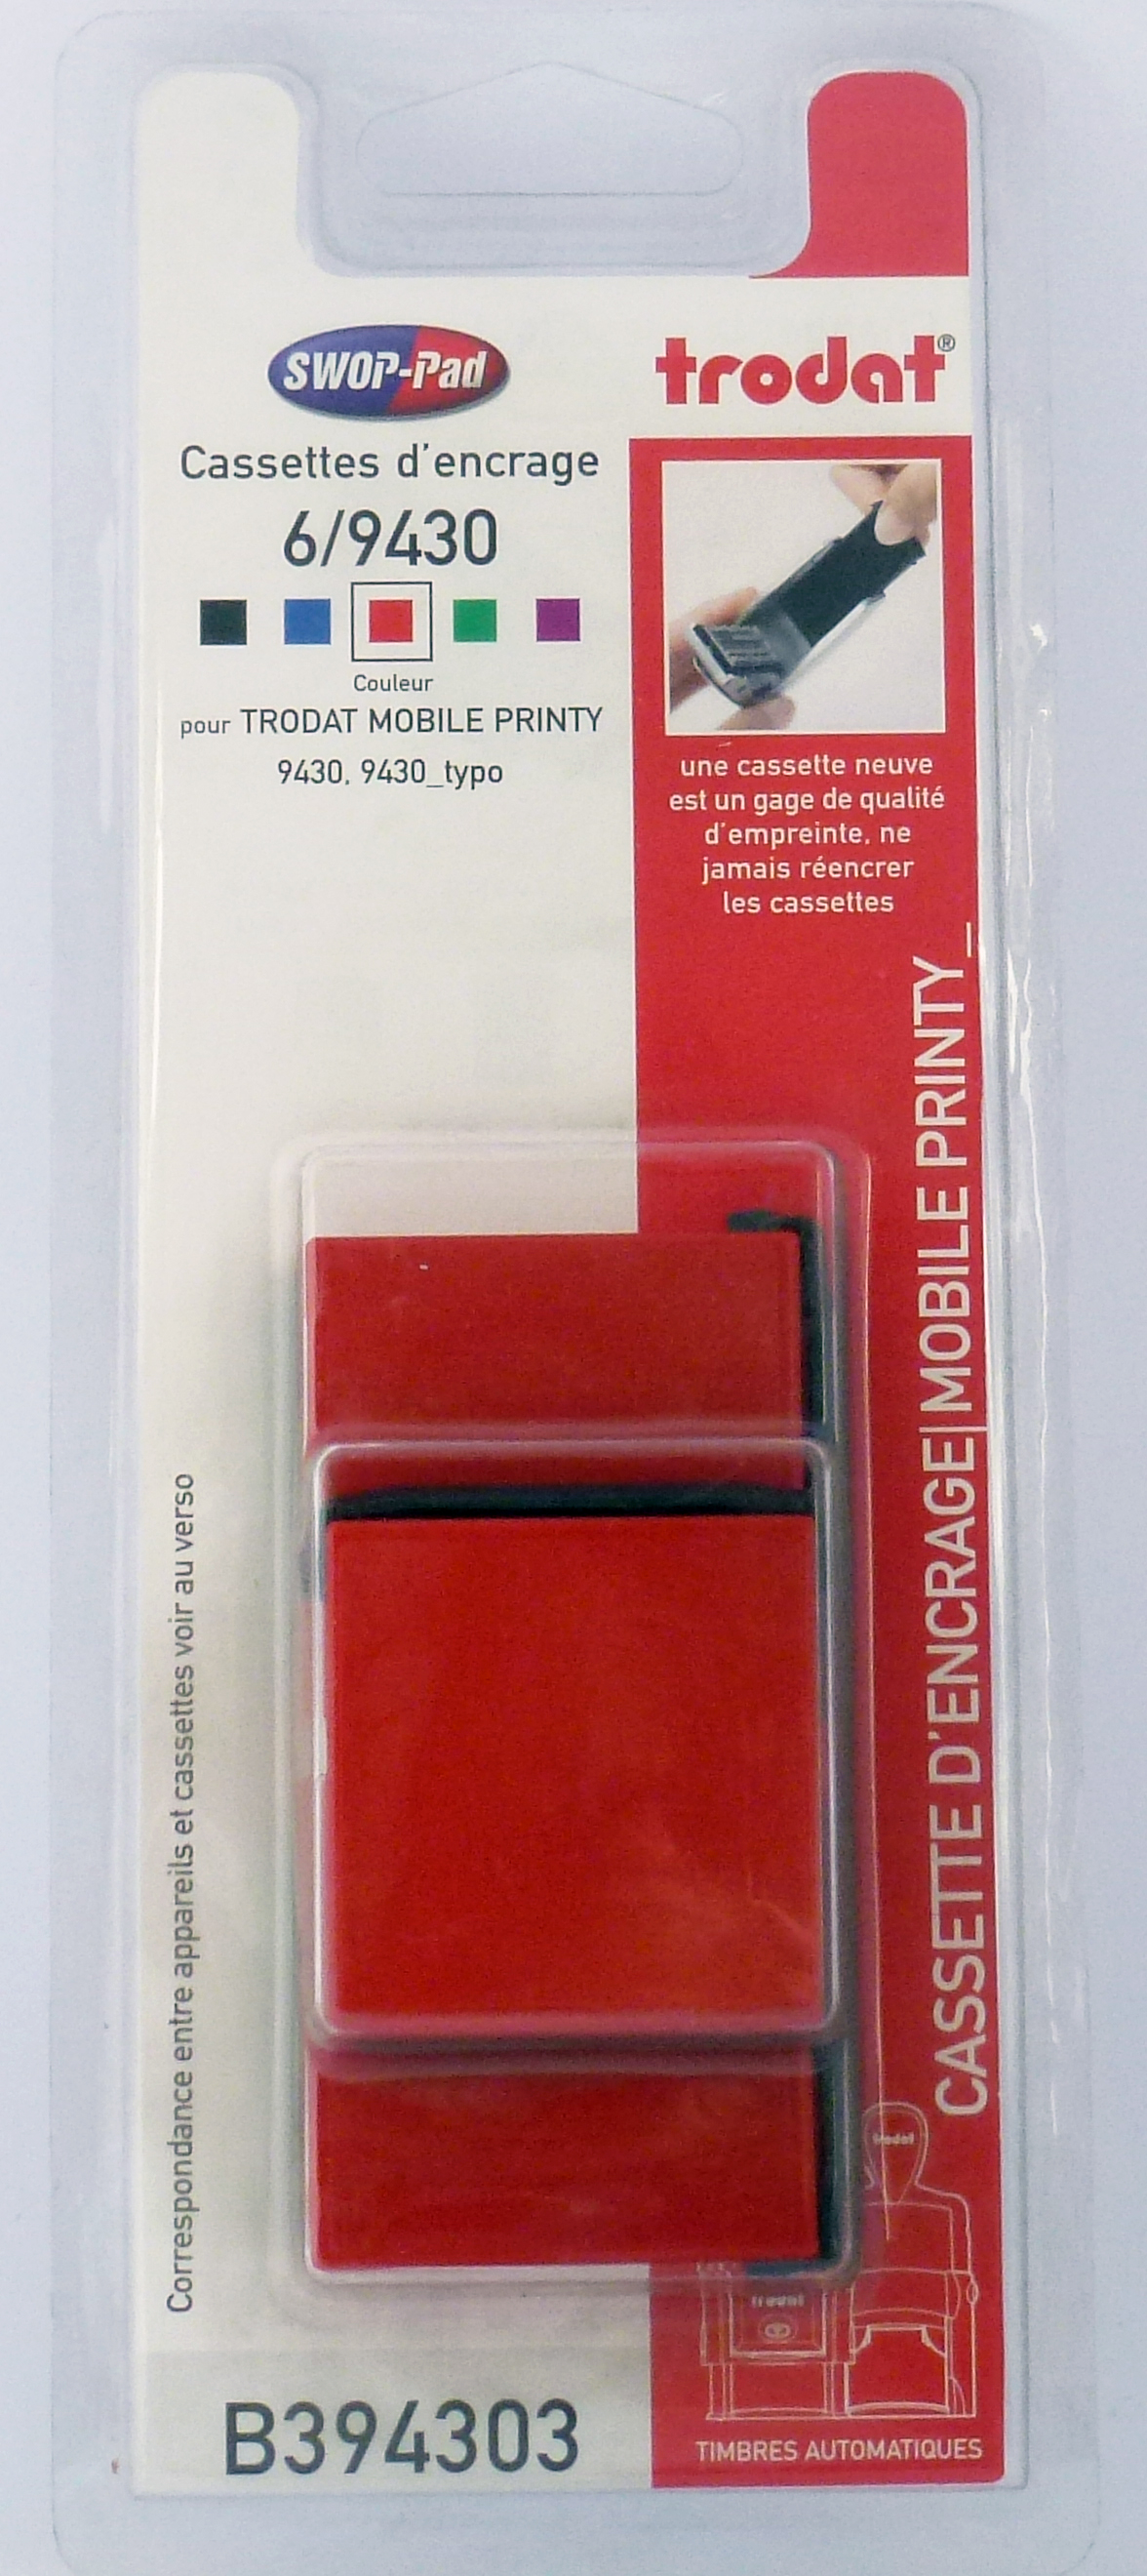 Trodat - 3 Encriers 6/9430 recharges pour tampon Mobile Printy 9430 - rouge